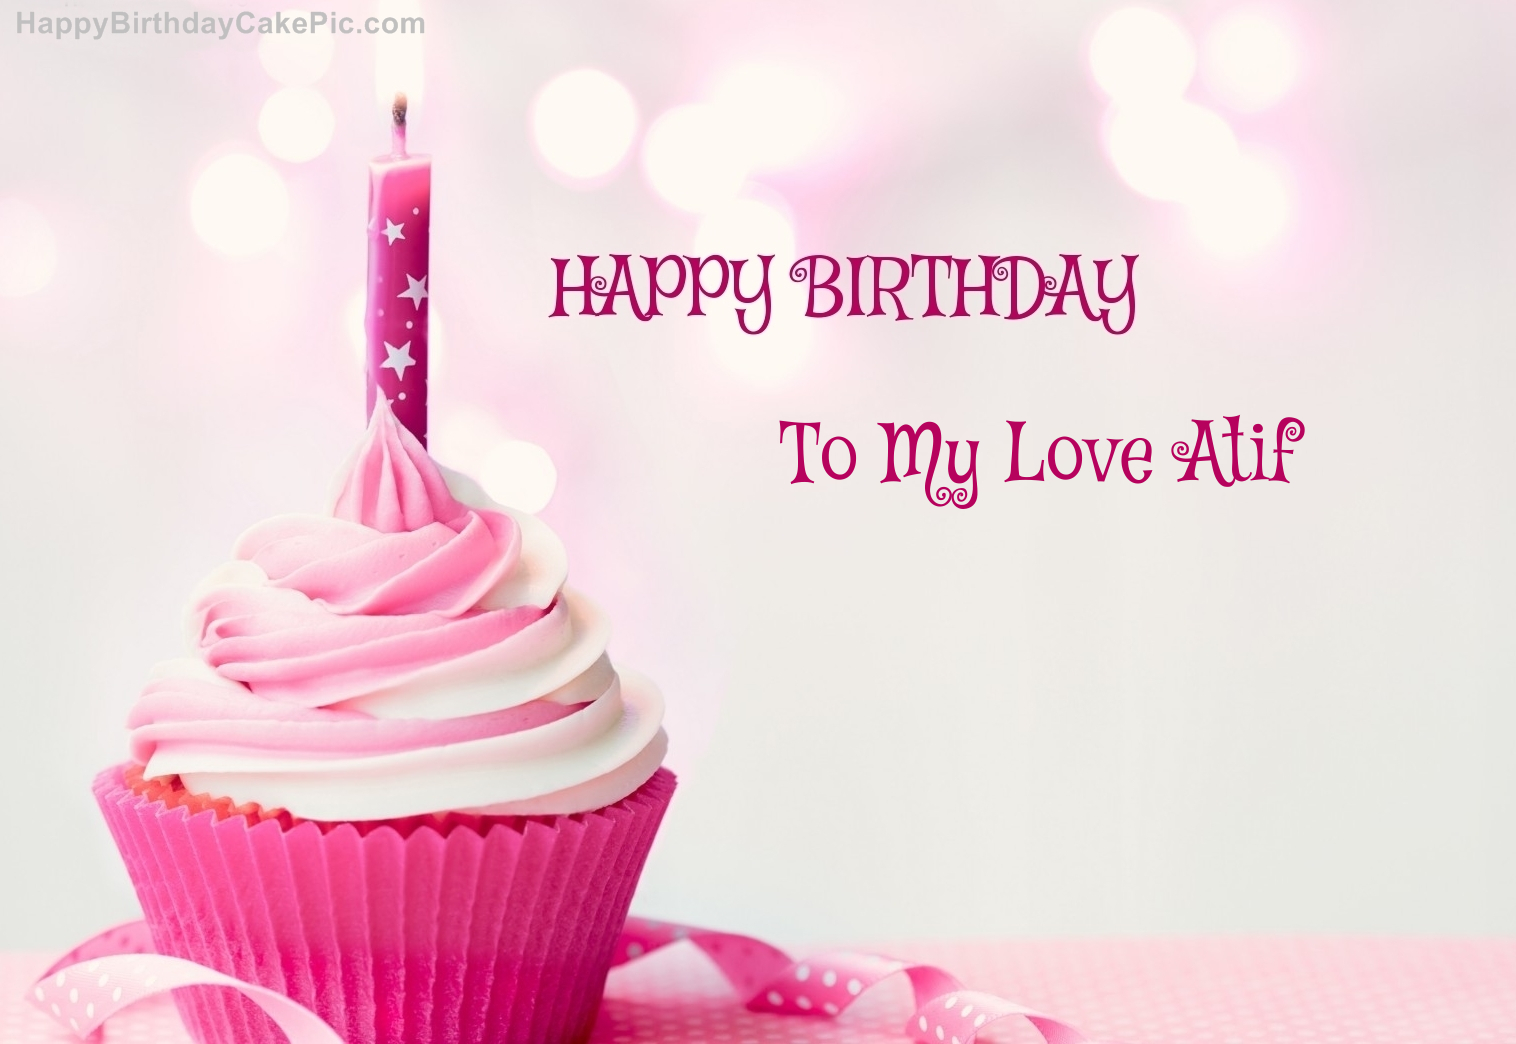 Happy Birthday Cupcake Candle Pink Cake For To My Love Atif